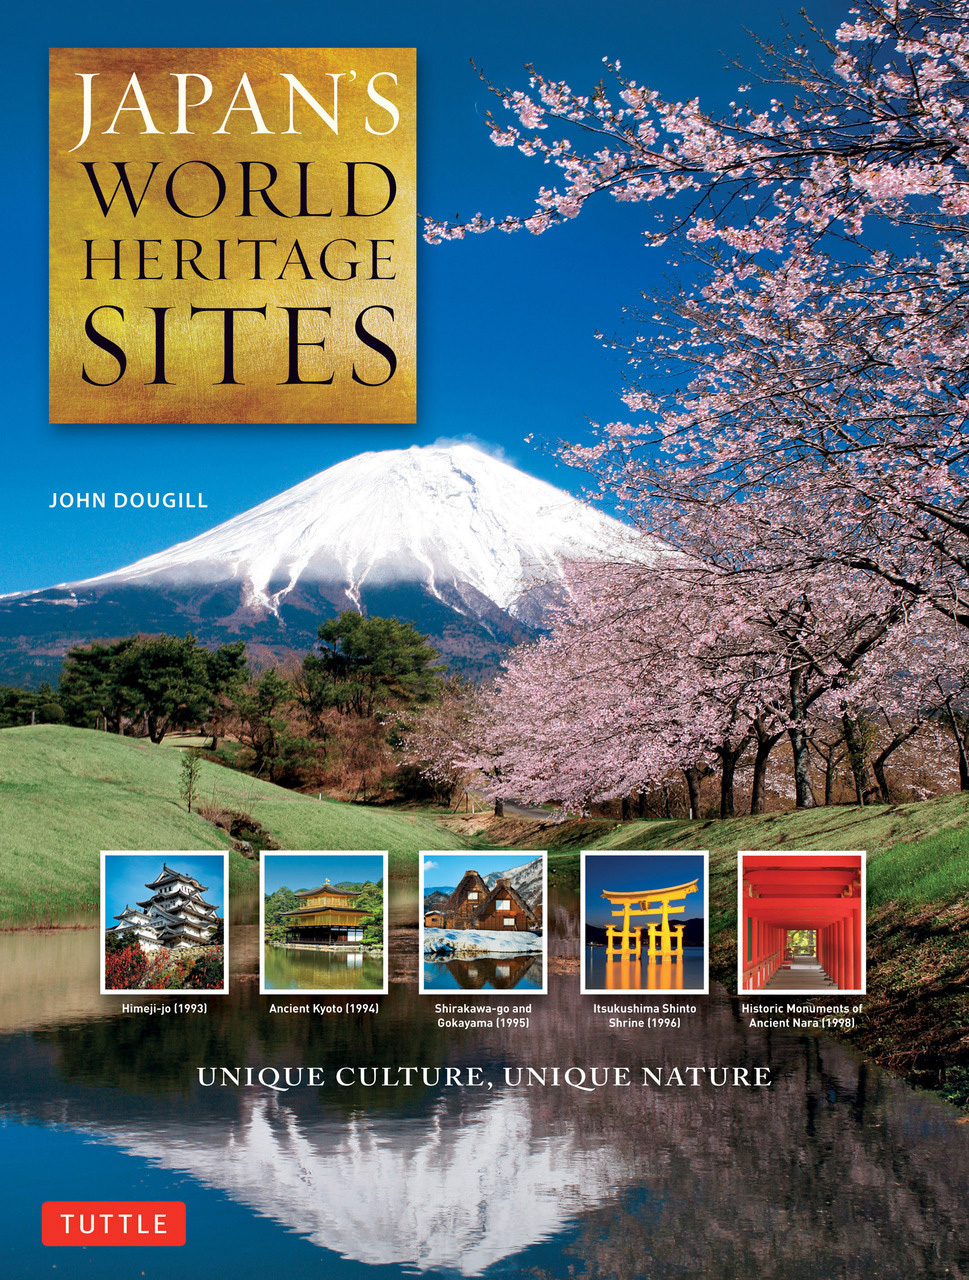 Japan's World Heritage Sites | The Japan Times